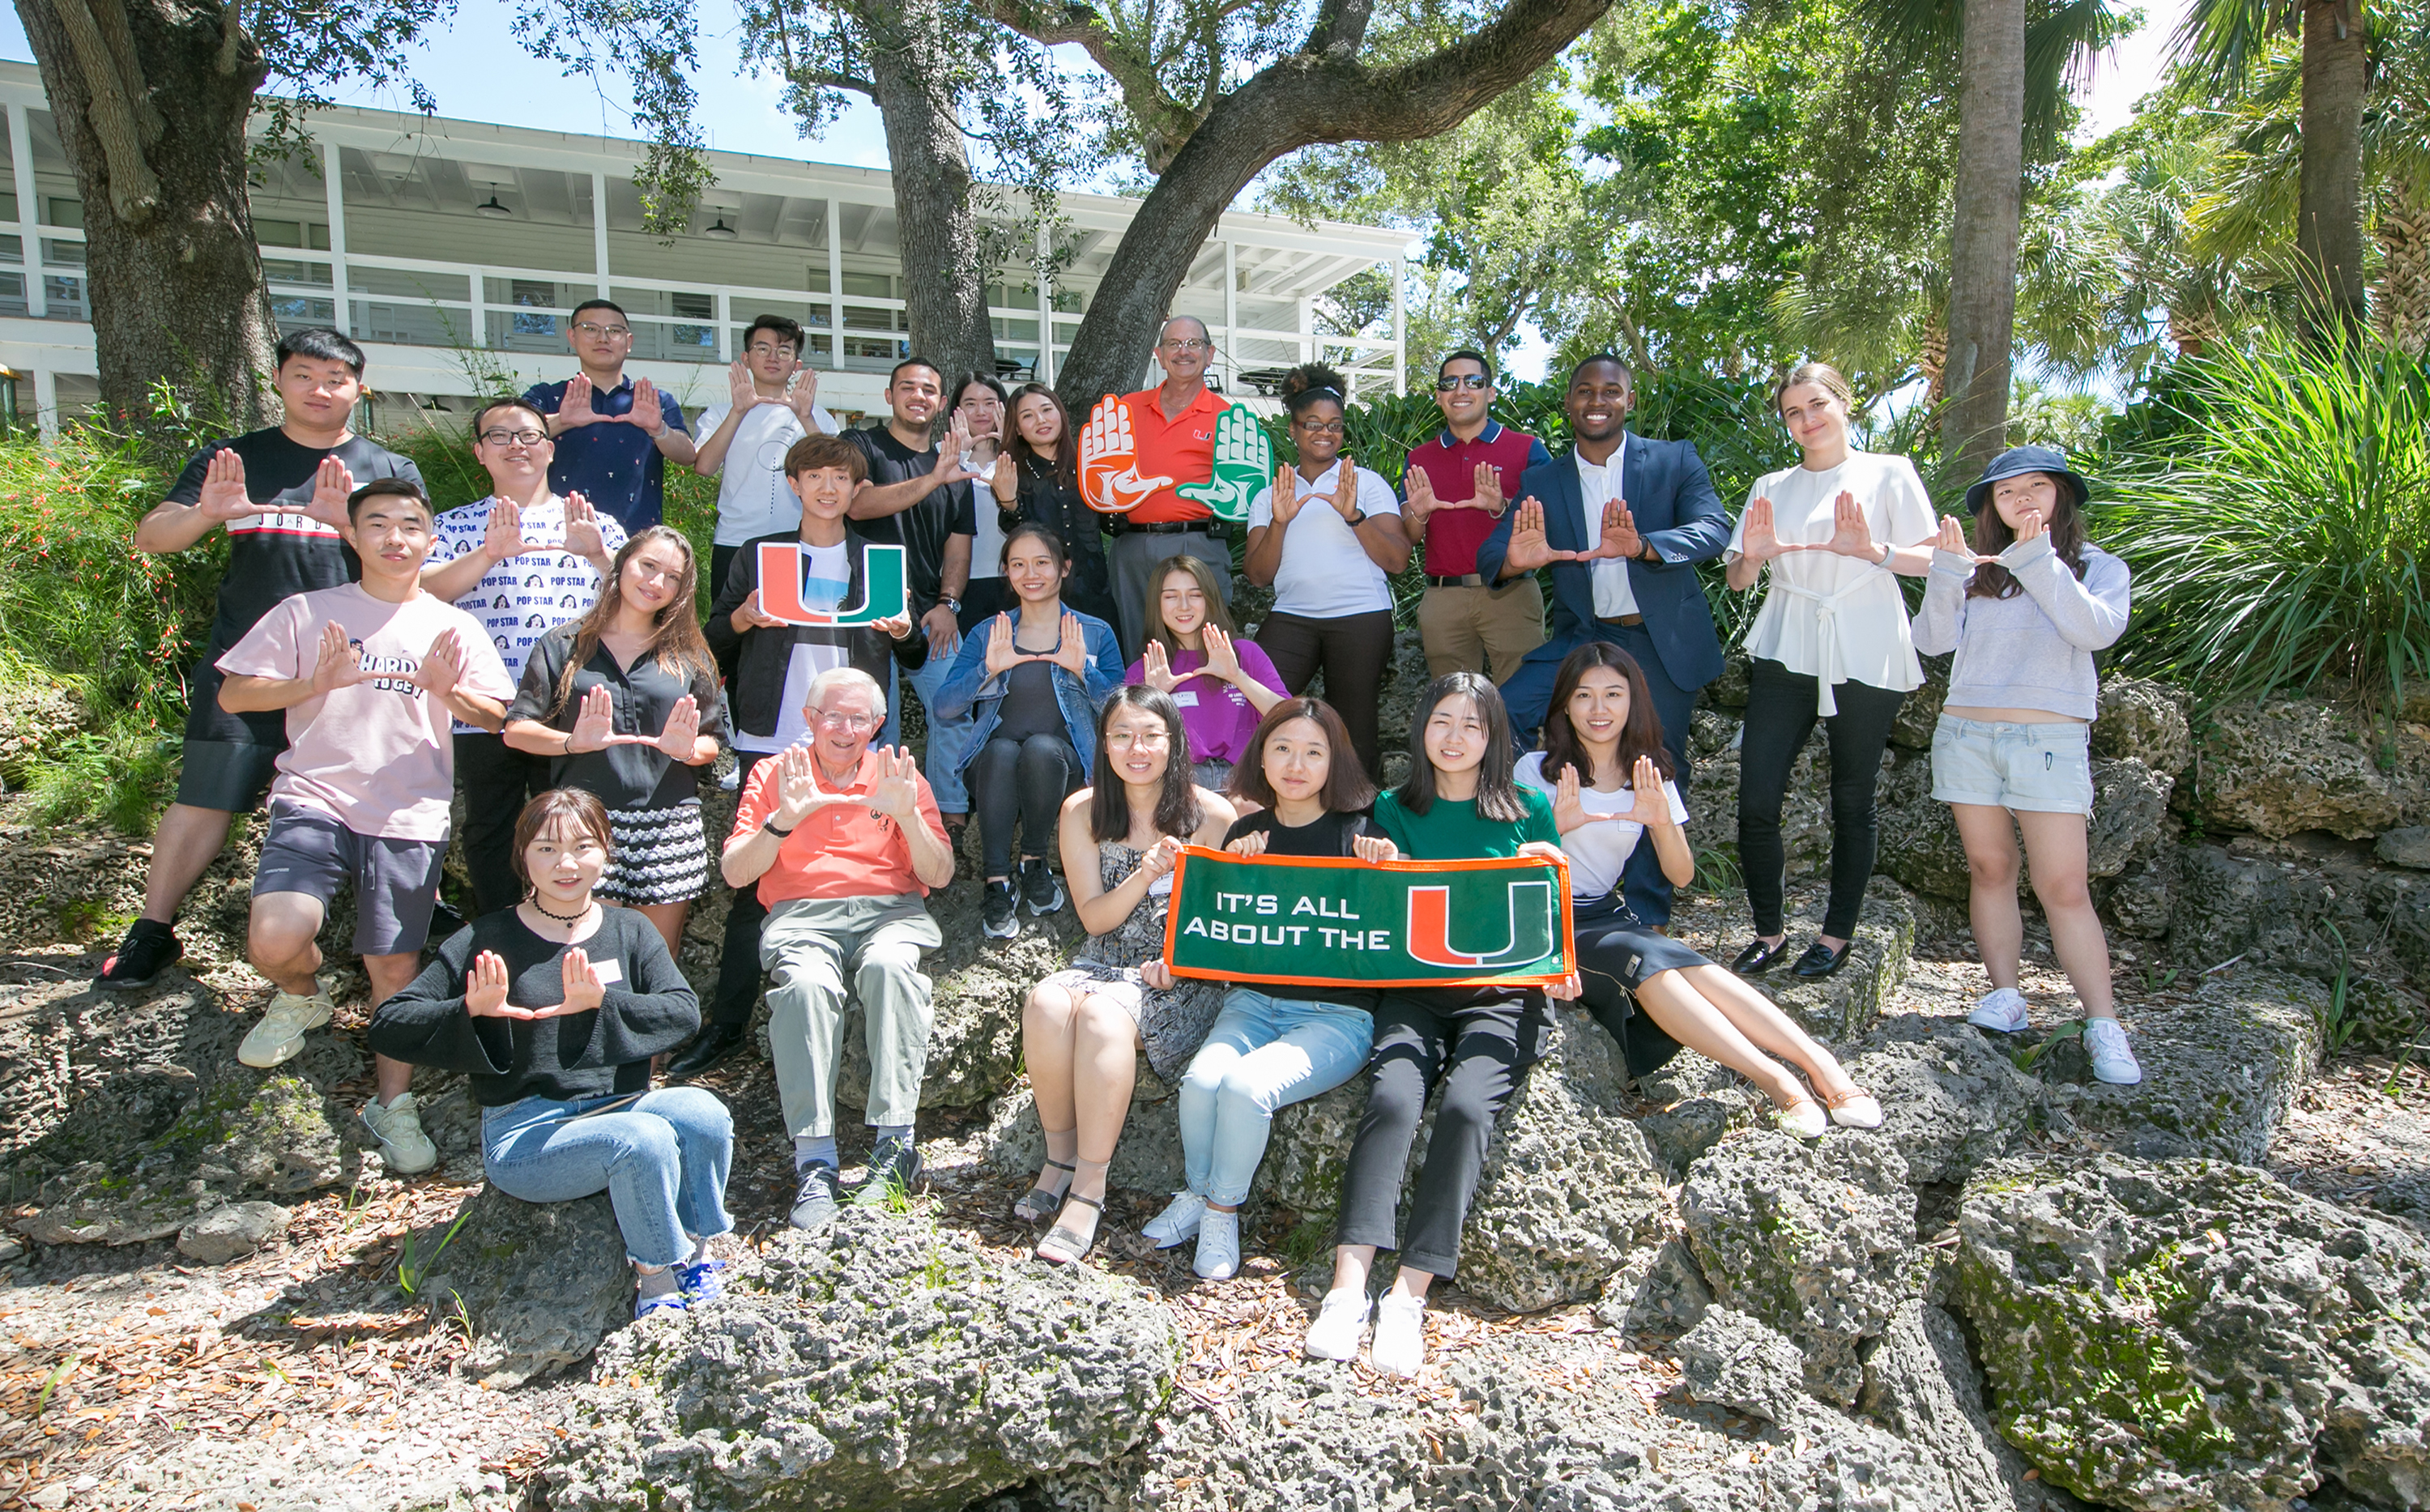 A photo at the MPA Orientation at the University of Miami.